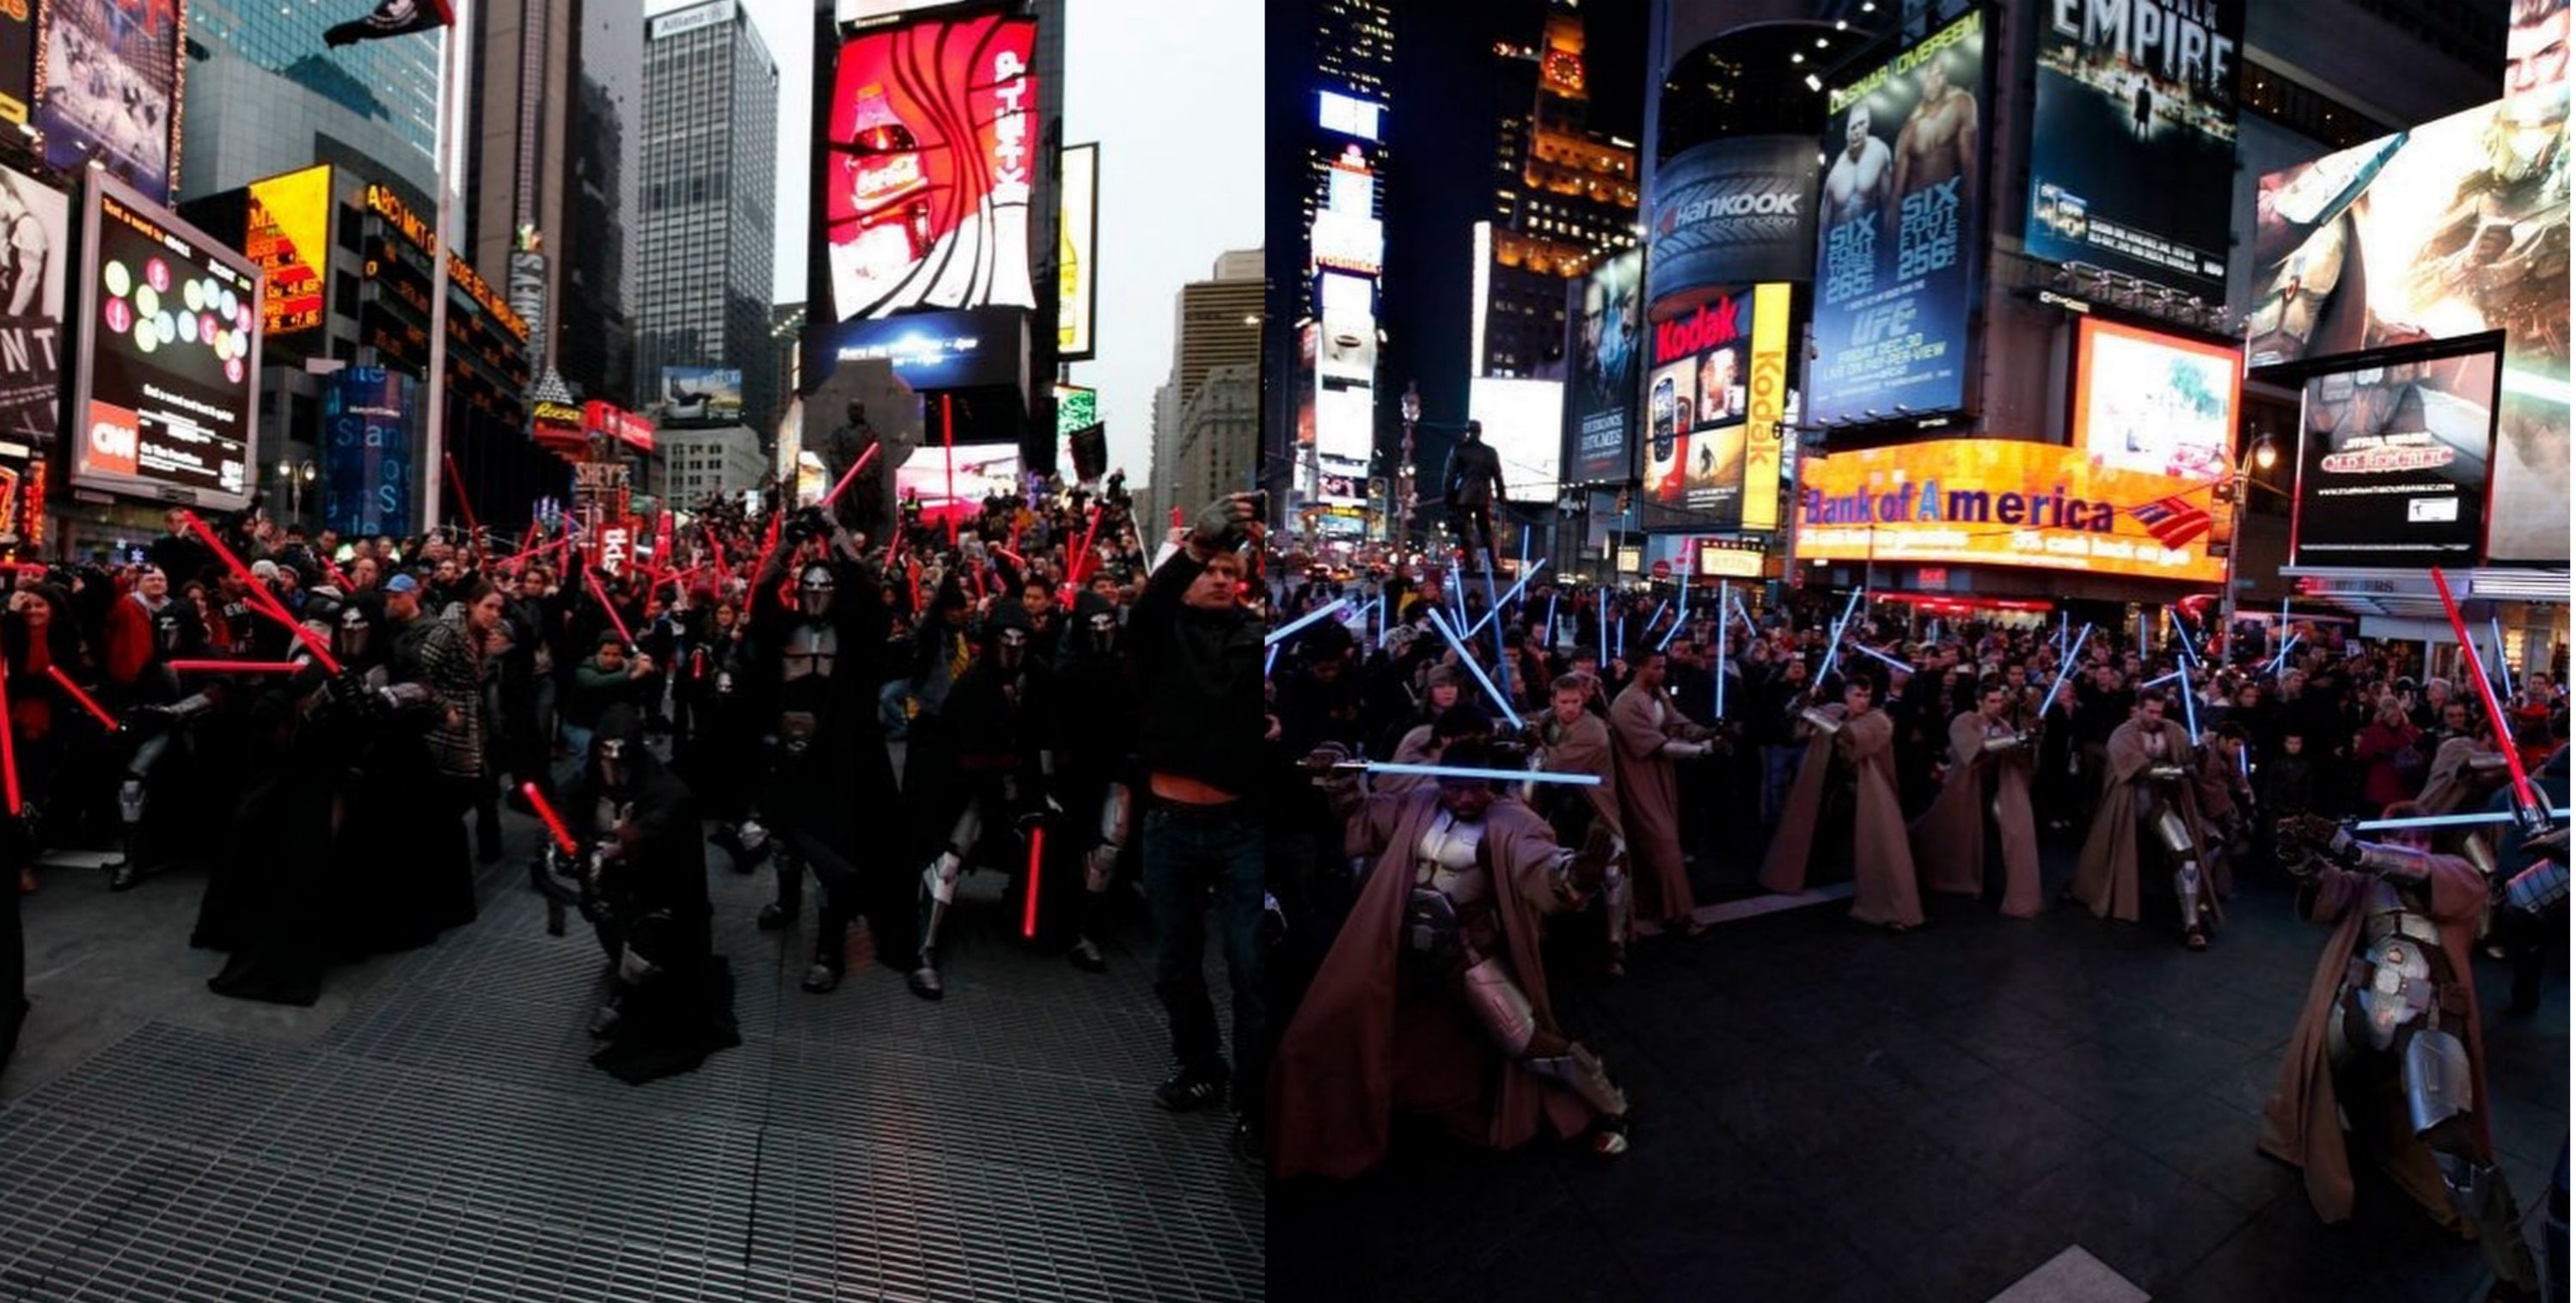 Back when OR sith and Jedi took over times square